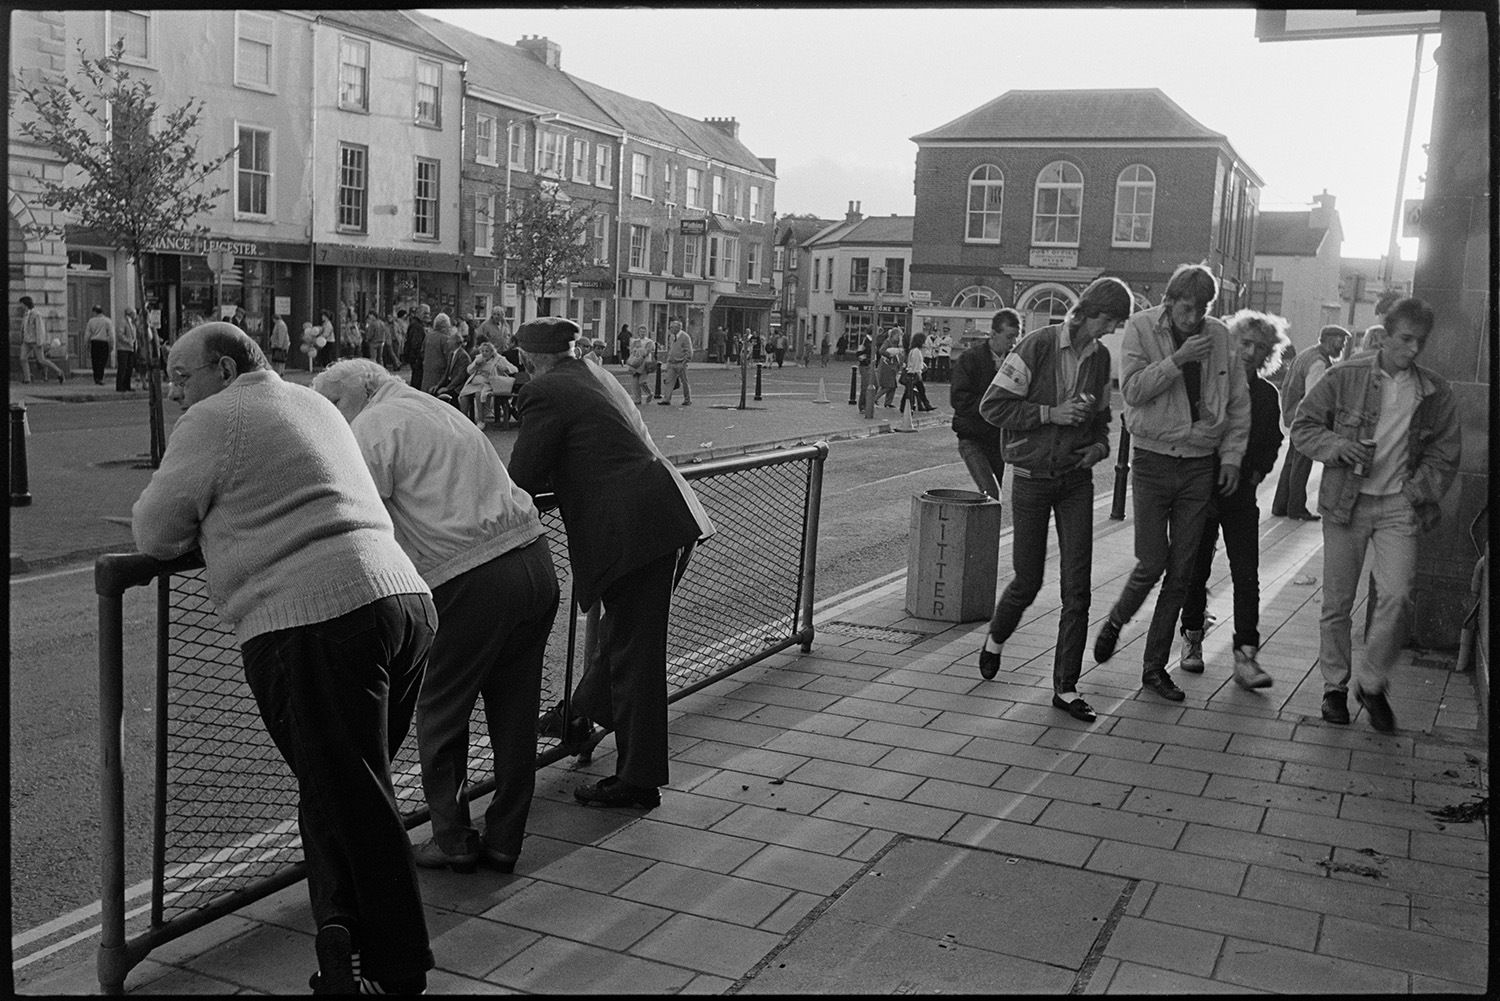 Spectators waiting for start of fair in town square. <br /> [Three people leaning on railings opposite South Molton Town Hall waiting for the fair to start. A group of young men are walking past carrying cans of drink. More people are gathering for the fair further along the street, outside shop fronts.]